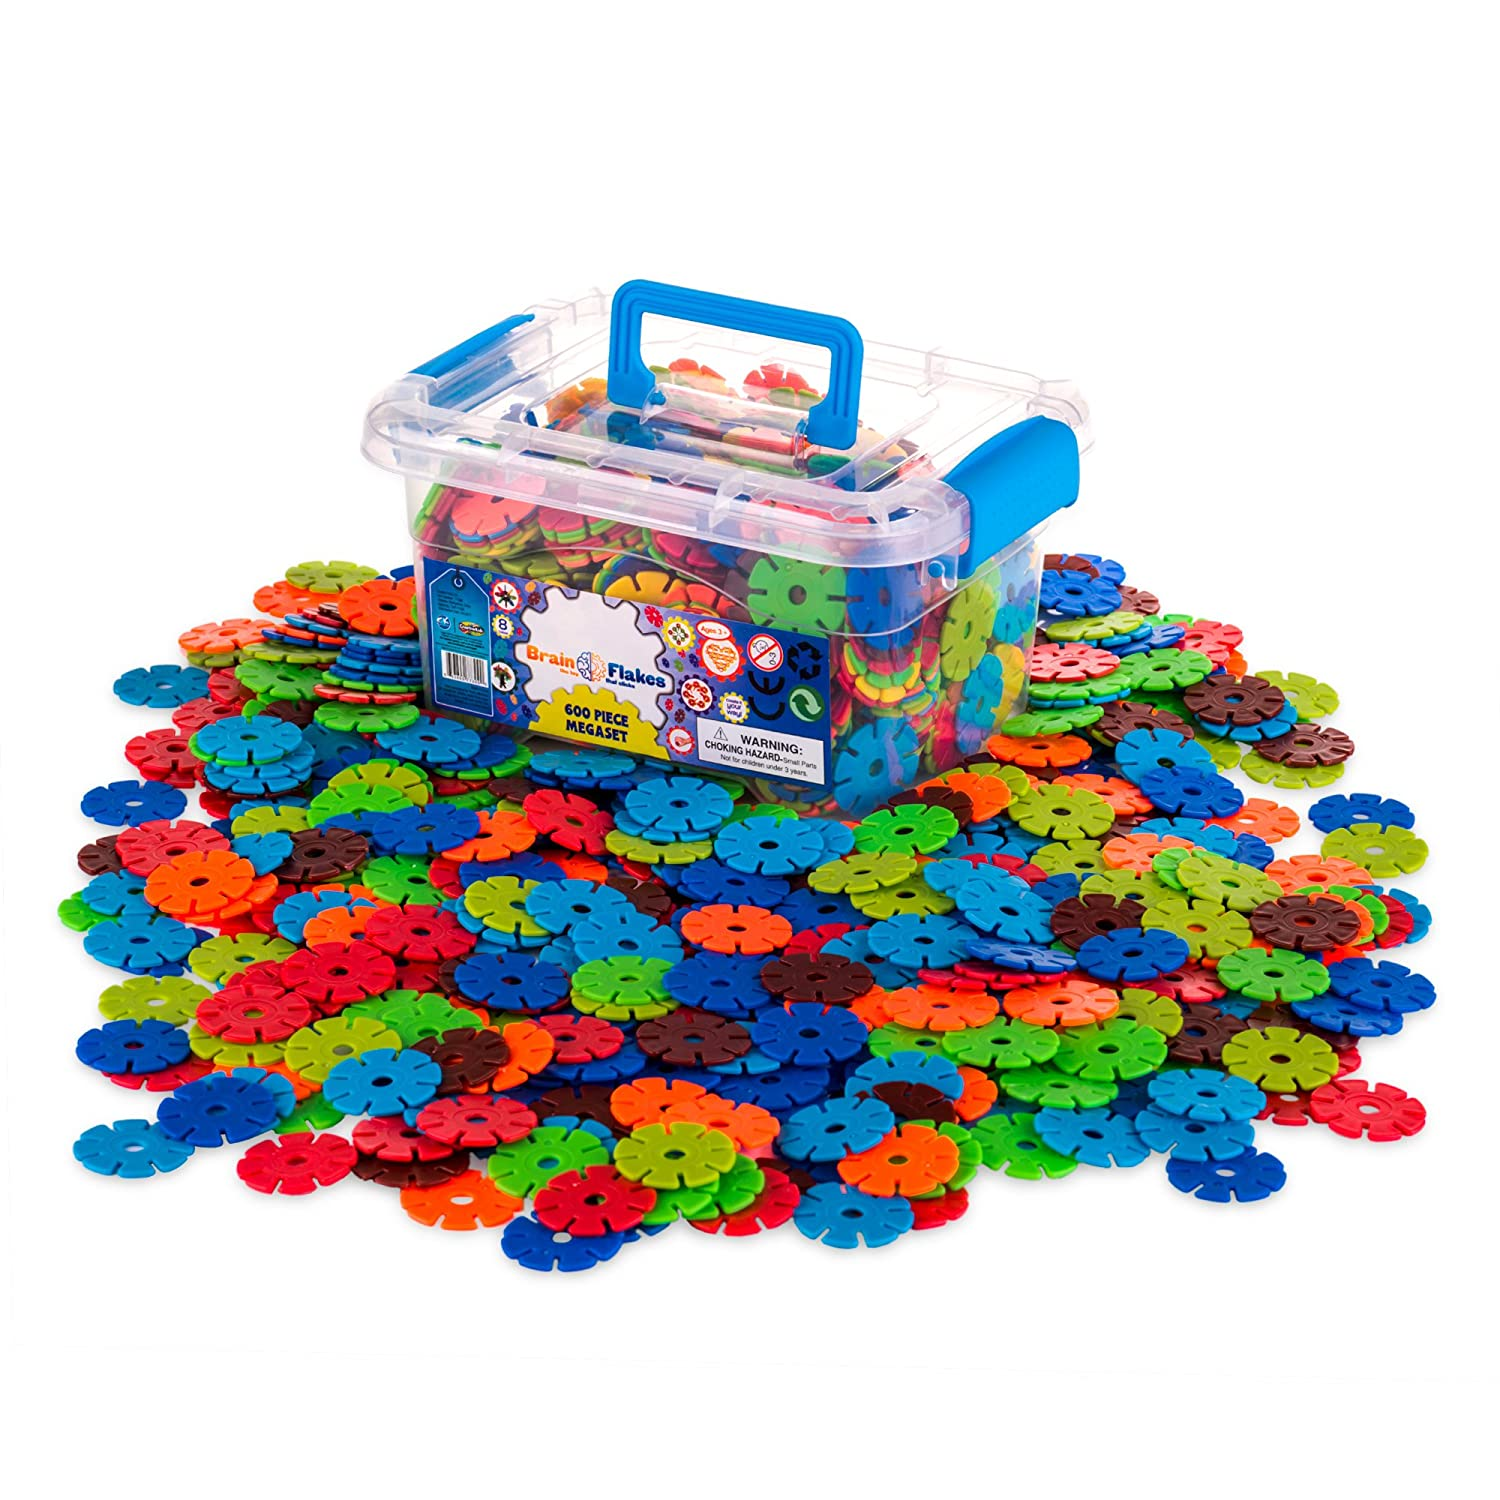 Creative Kids Brain Flakes Large 600 Piece Interlocking Plastic Disc Set for Safe, Fun, Creative Building - Educational STEM Construction Toy for Boys & Girls - Non Toxic - Ages 3 and Up Review